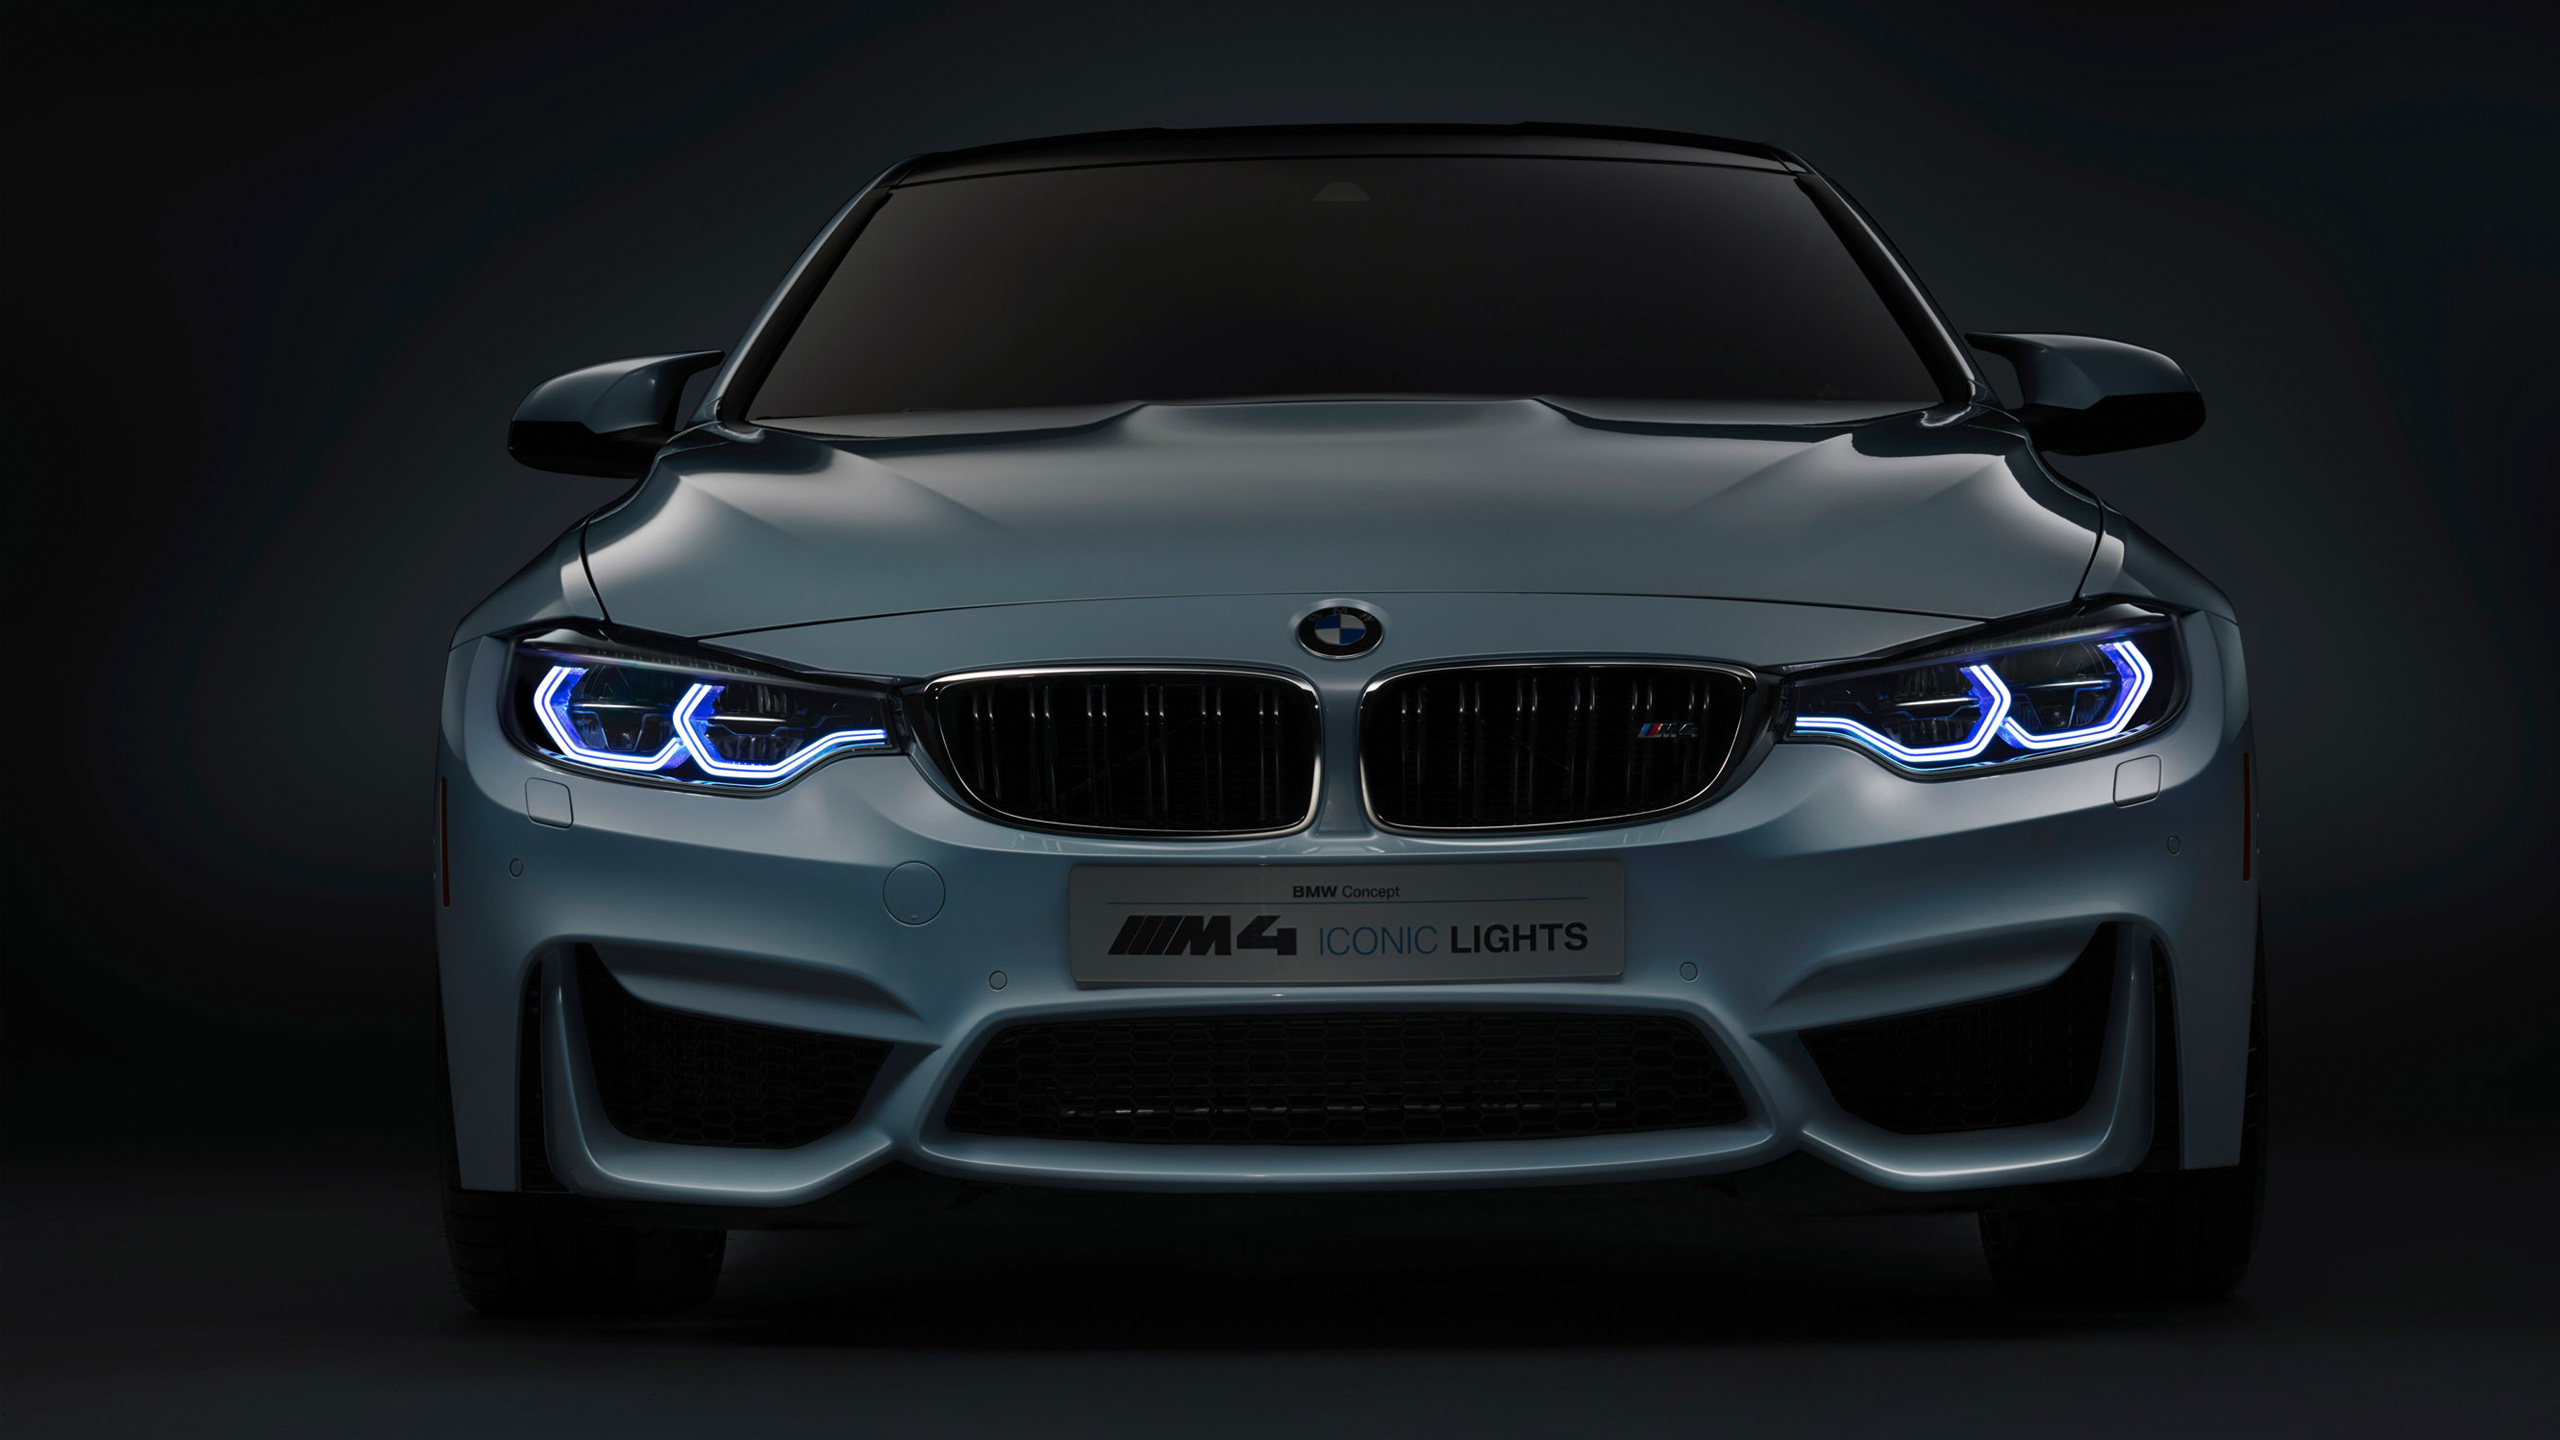 2015 bmw m4 concept iconic lights wallpaper | hd car wallpapers | id